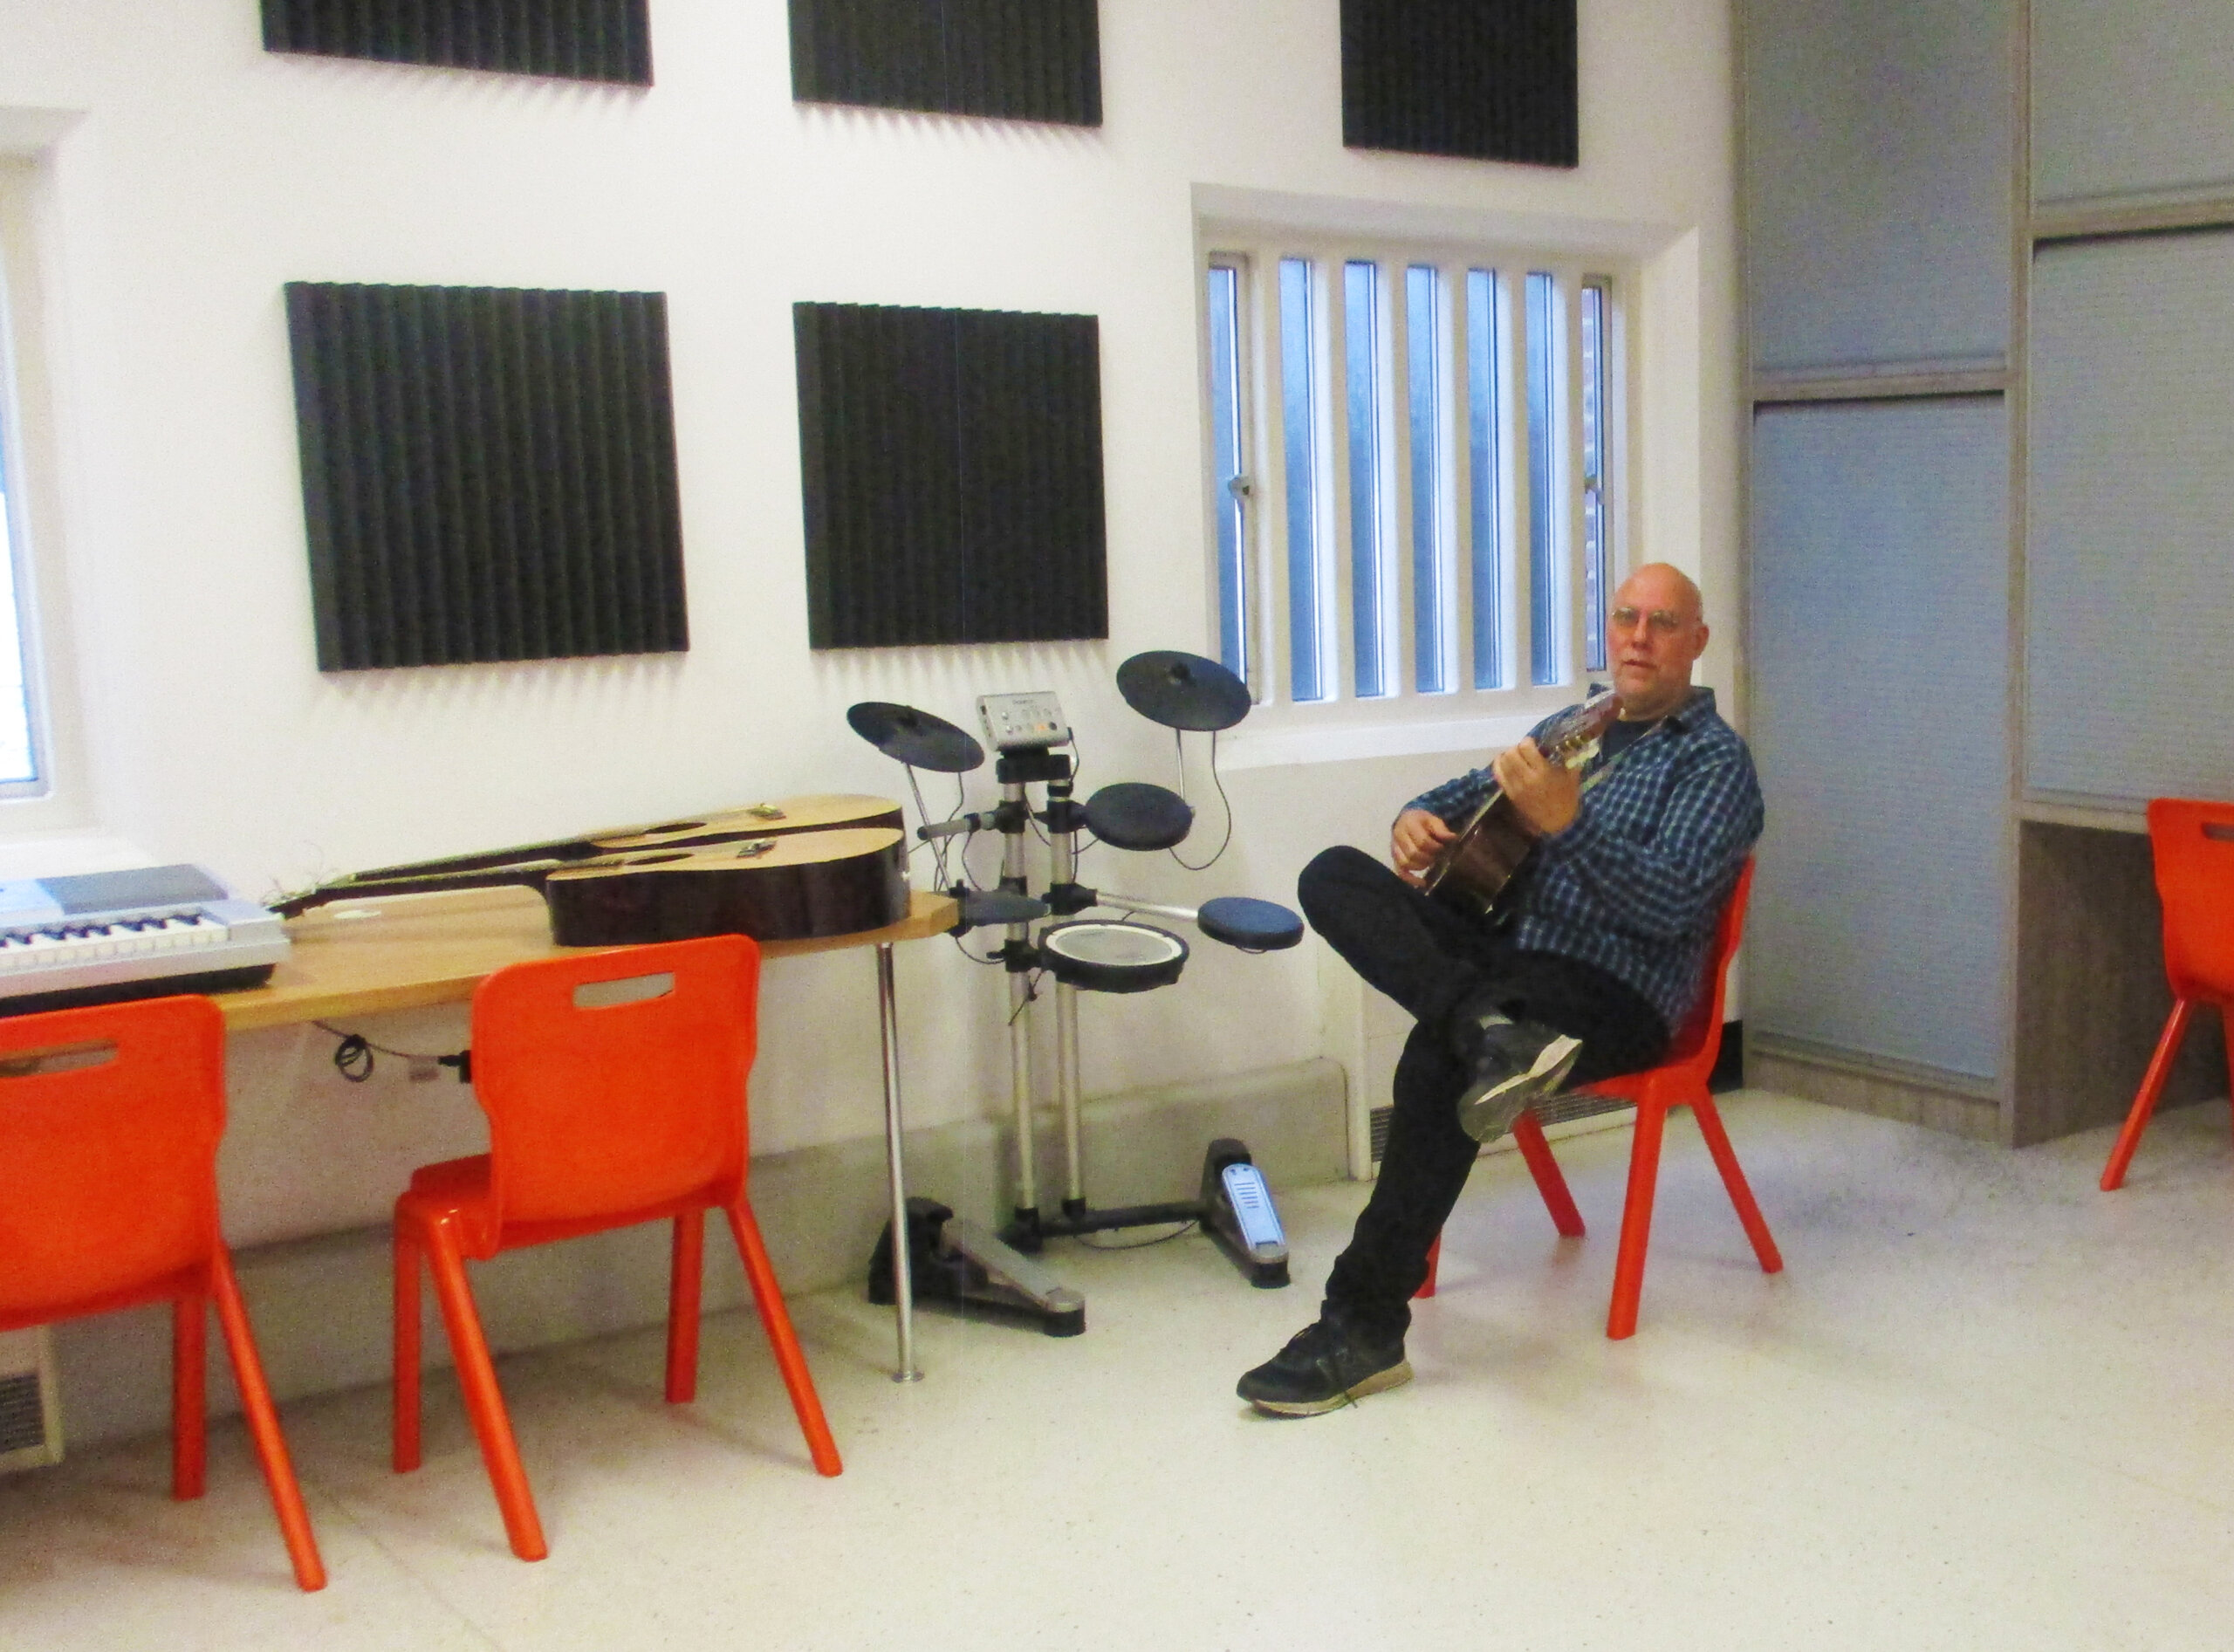 Adapting group music sessions for lockdown at HMP Pentonville